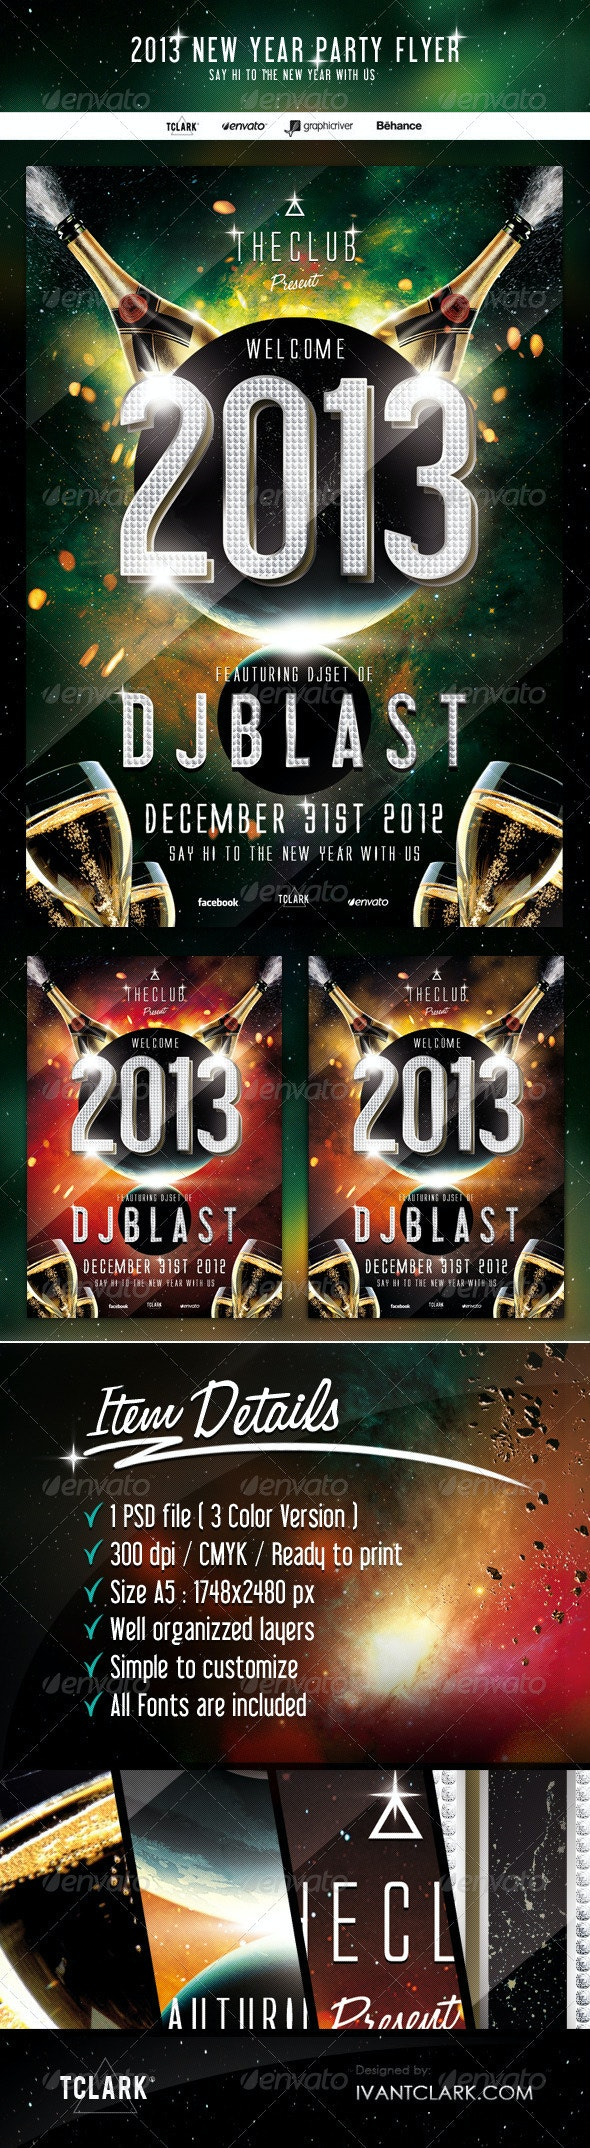 2013 New Year Party Flyer - Clubs & Parties Events